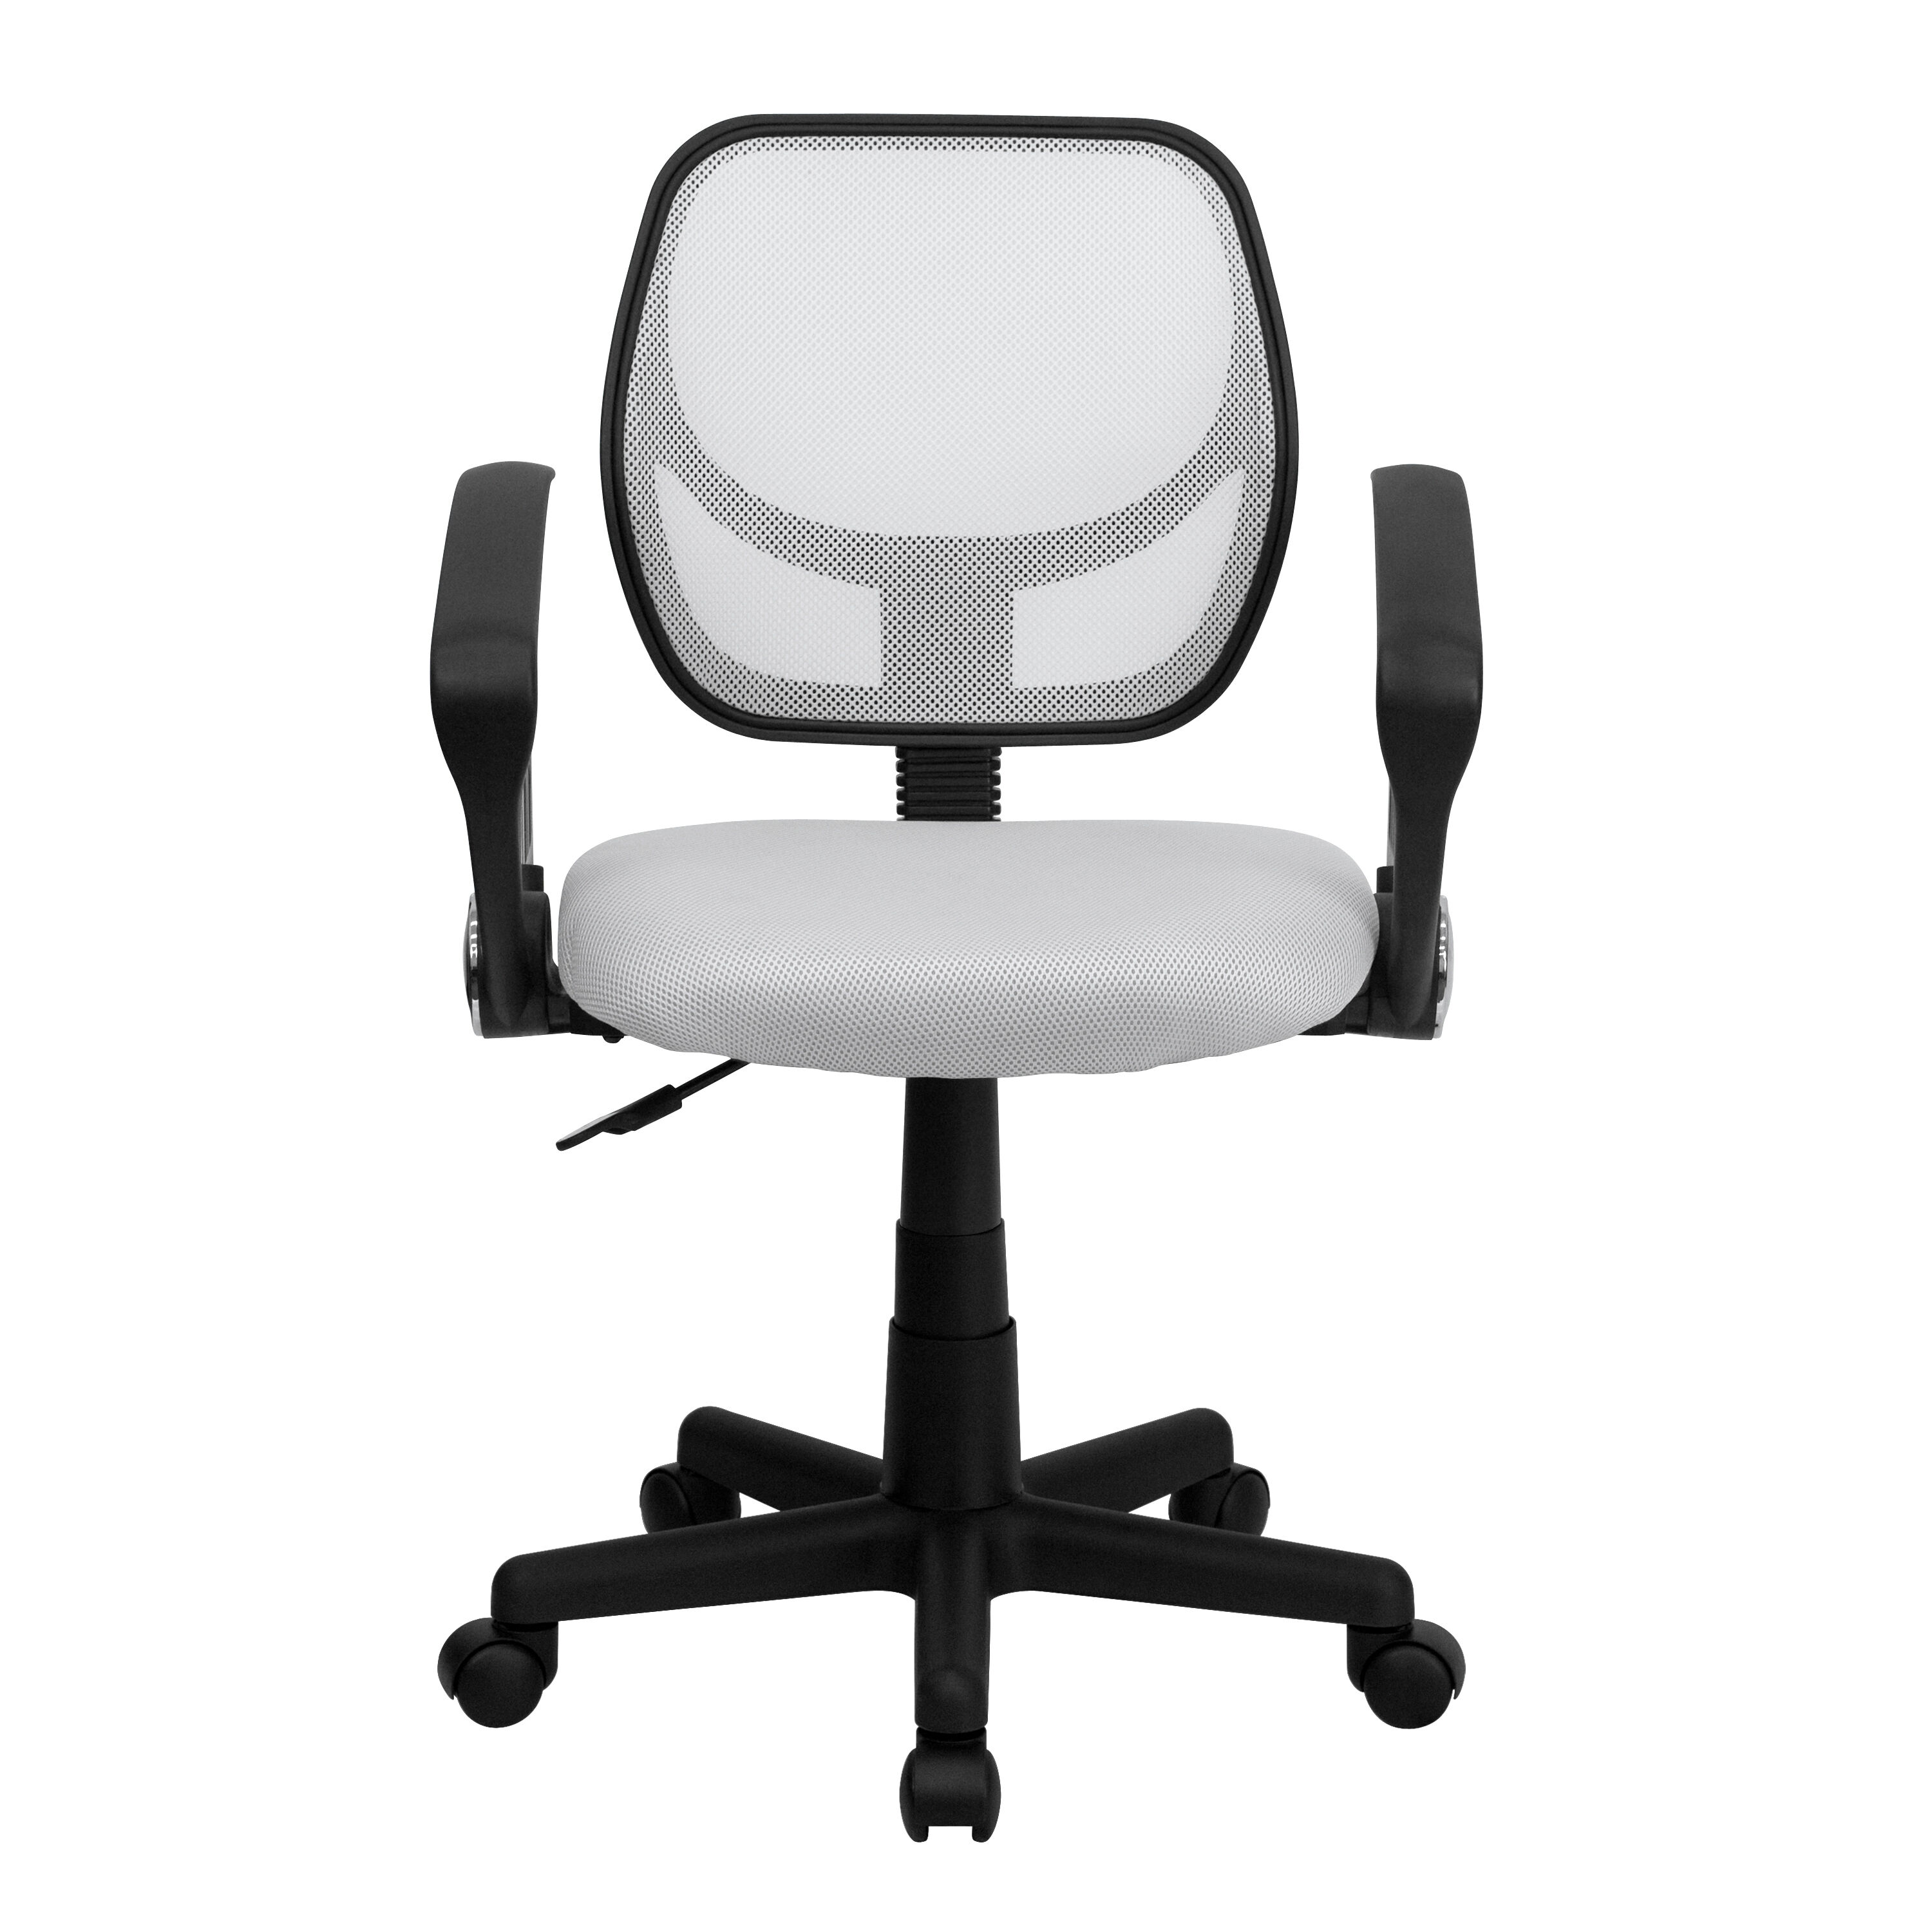 Our Mid Back White Mesh Swivel Task Chair With Arms Is On Sale Now.